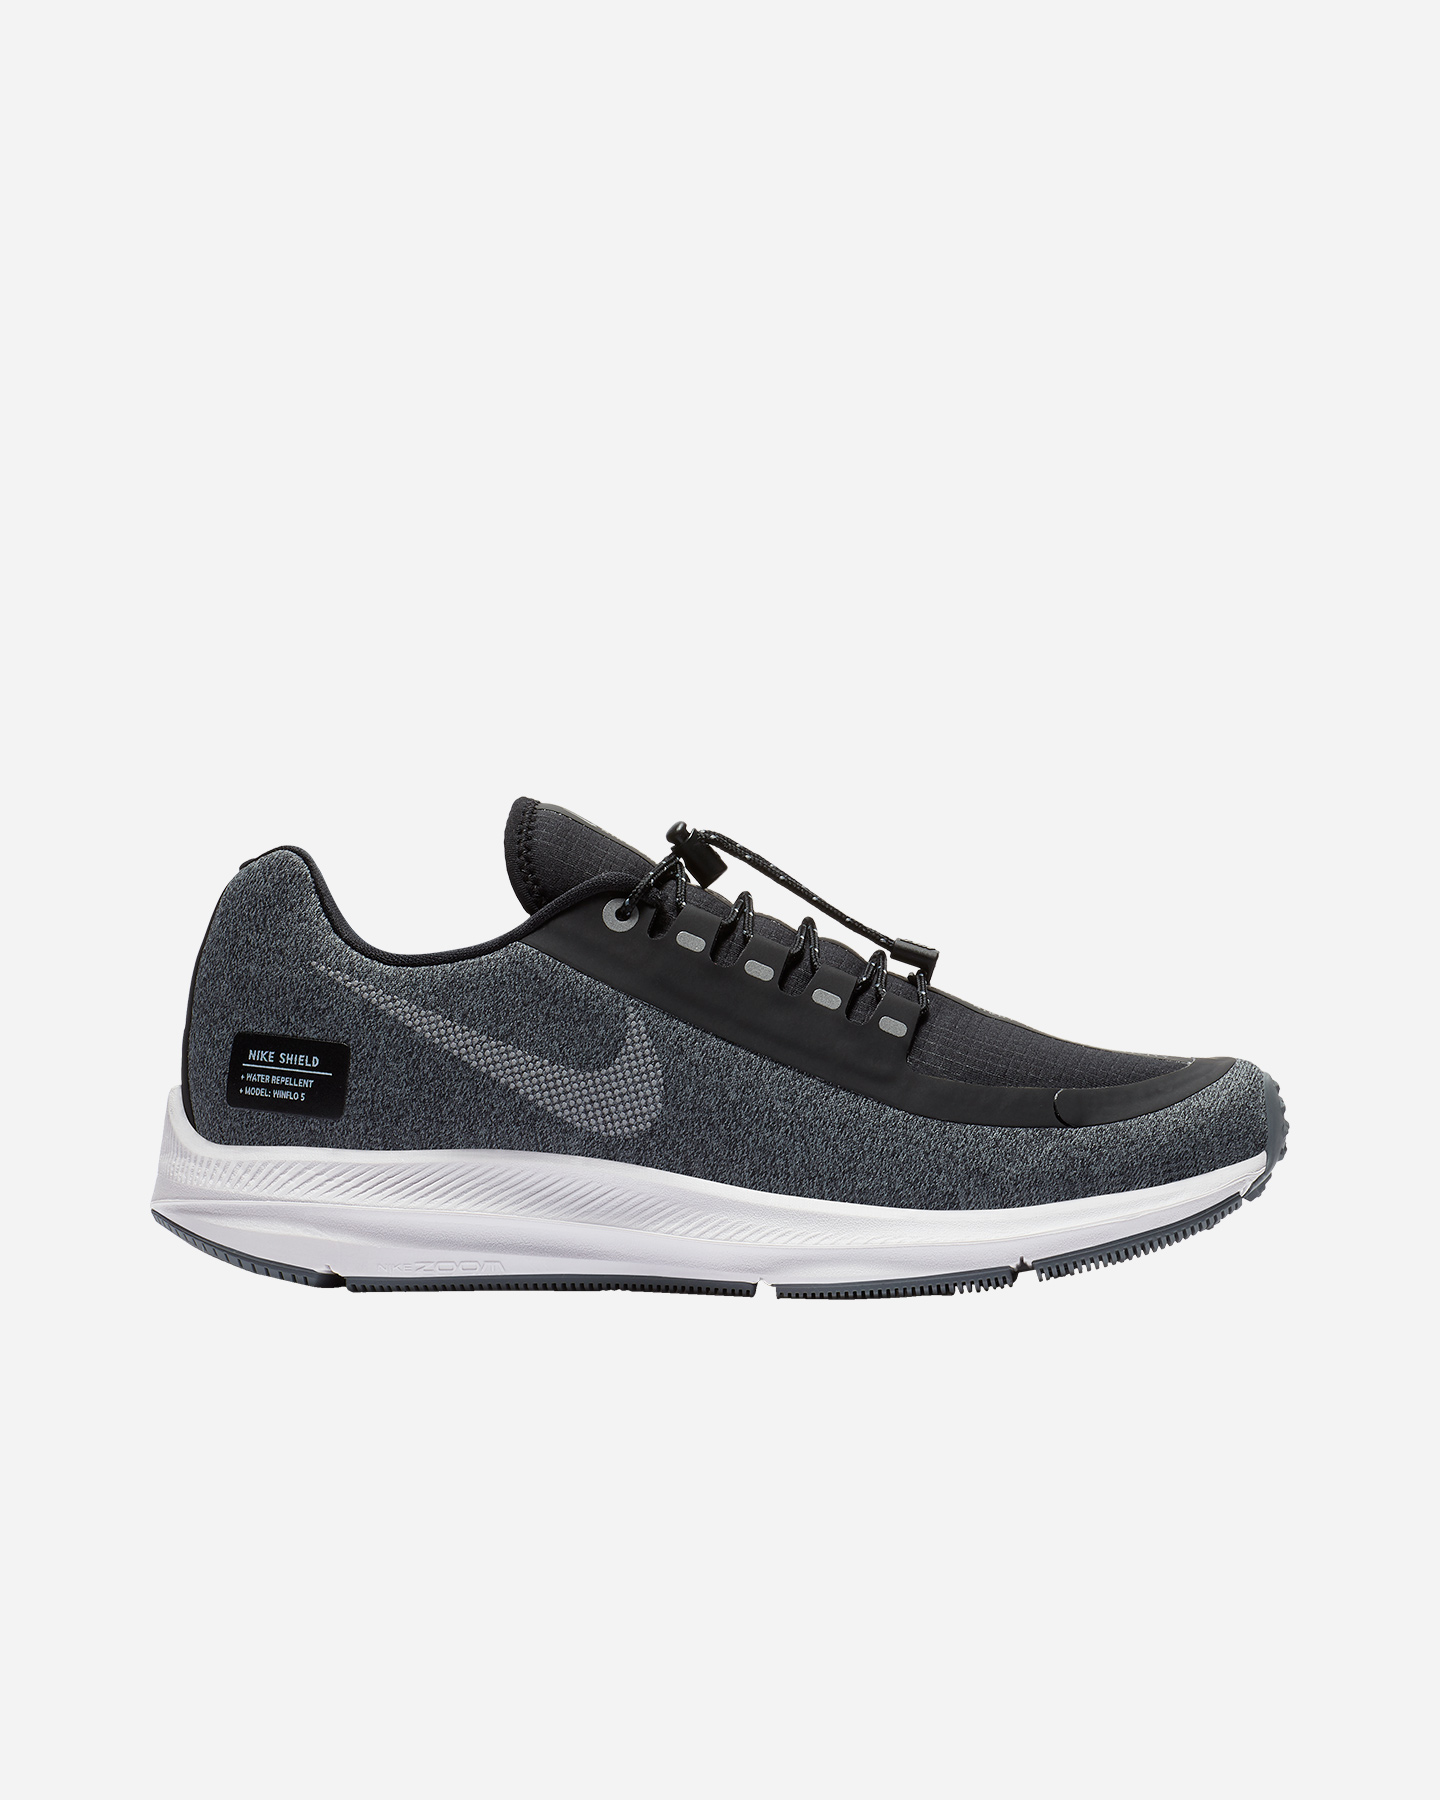 innovative design 197b3 4087c Scarpe Running Nike Zoom Winflo 5 Shield W AO1573-001 | Cisalfa Sport